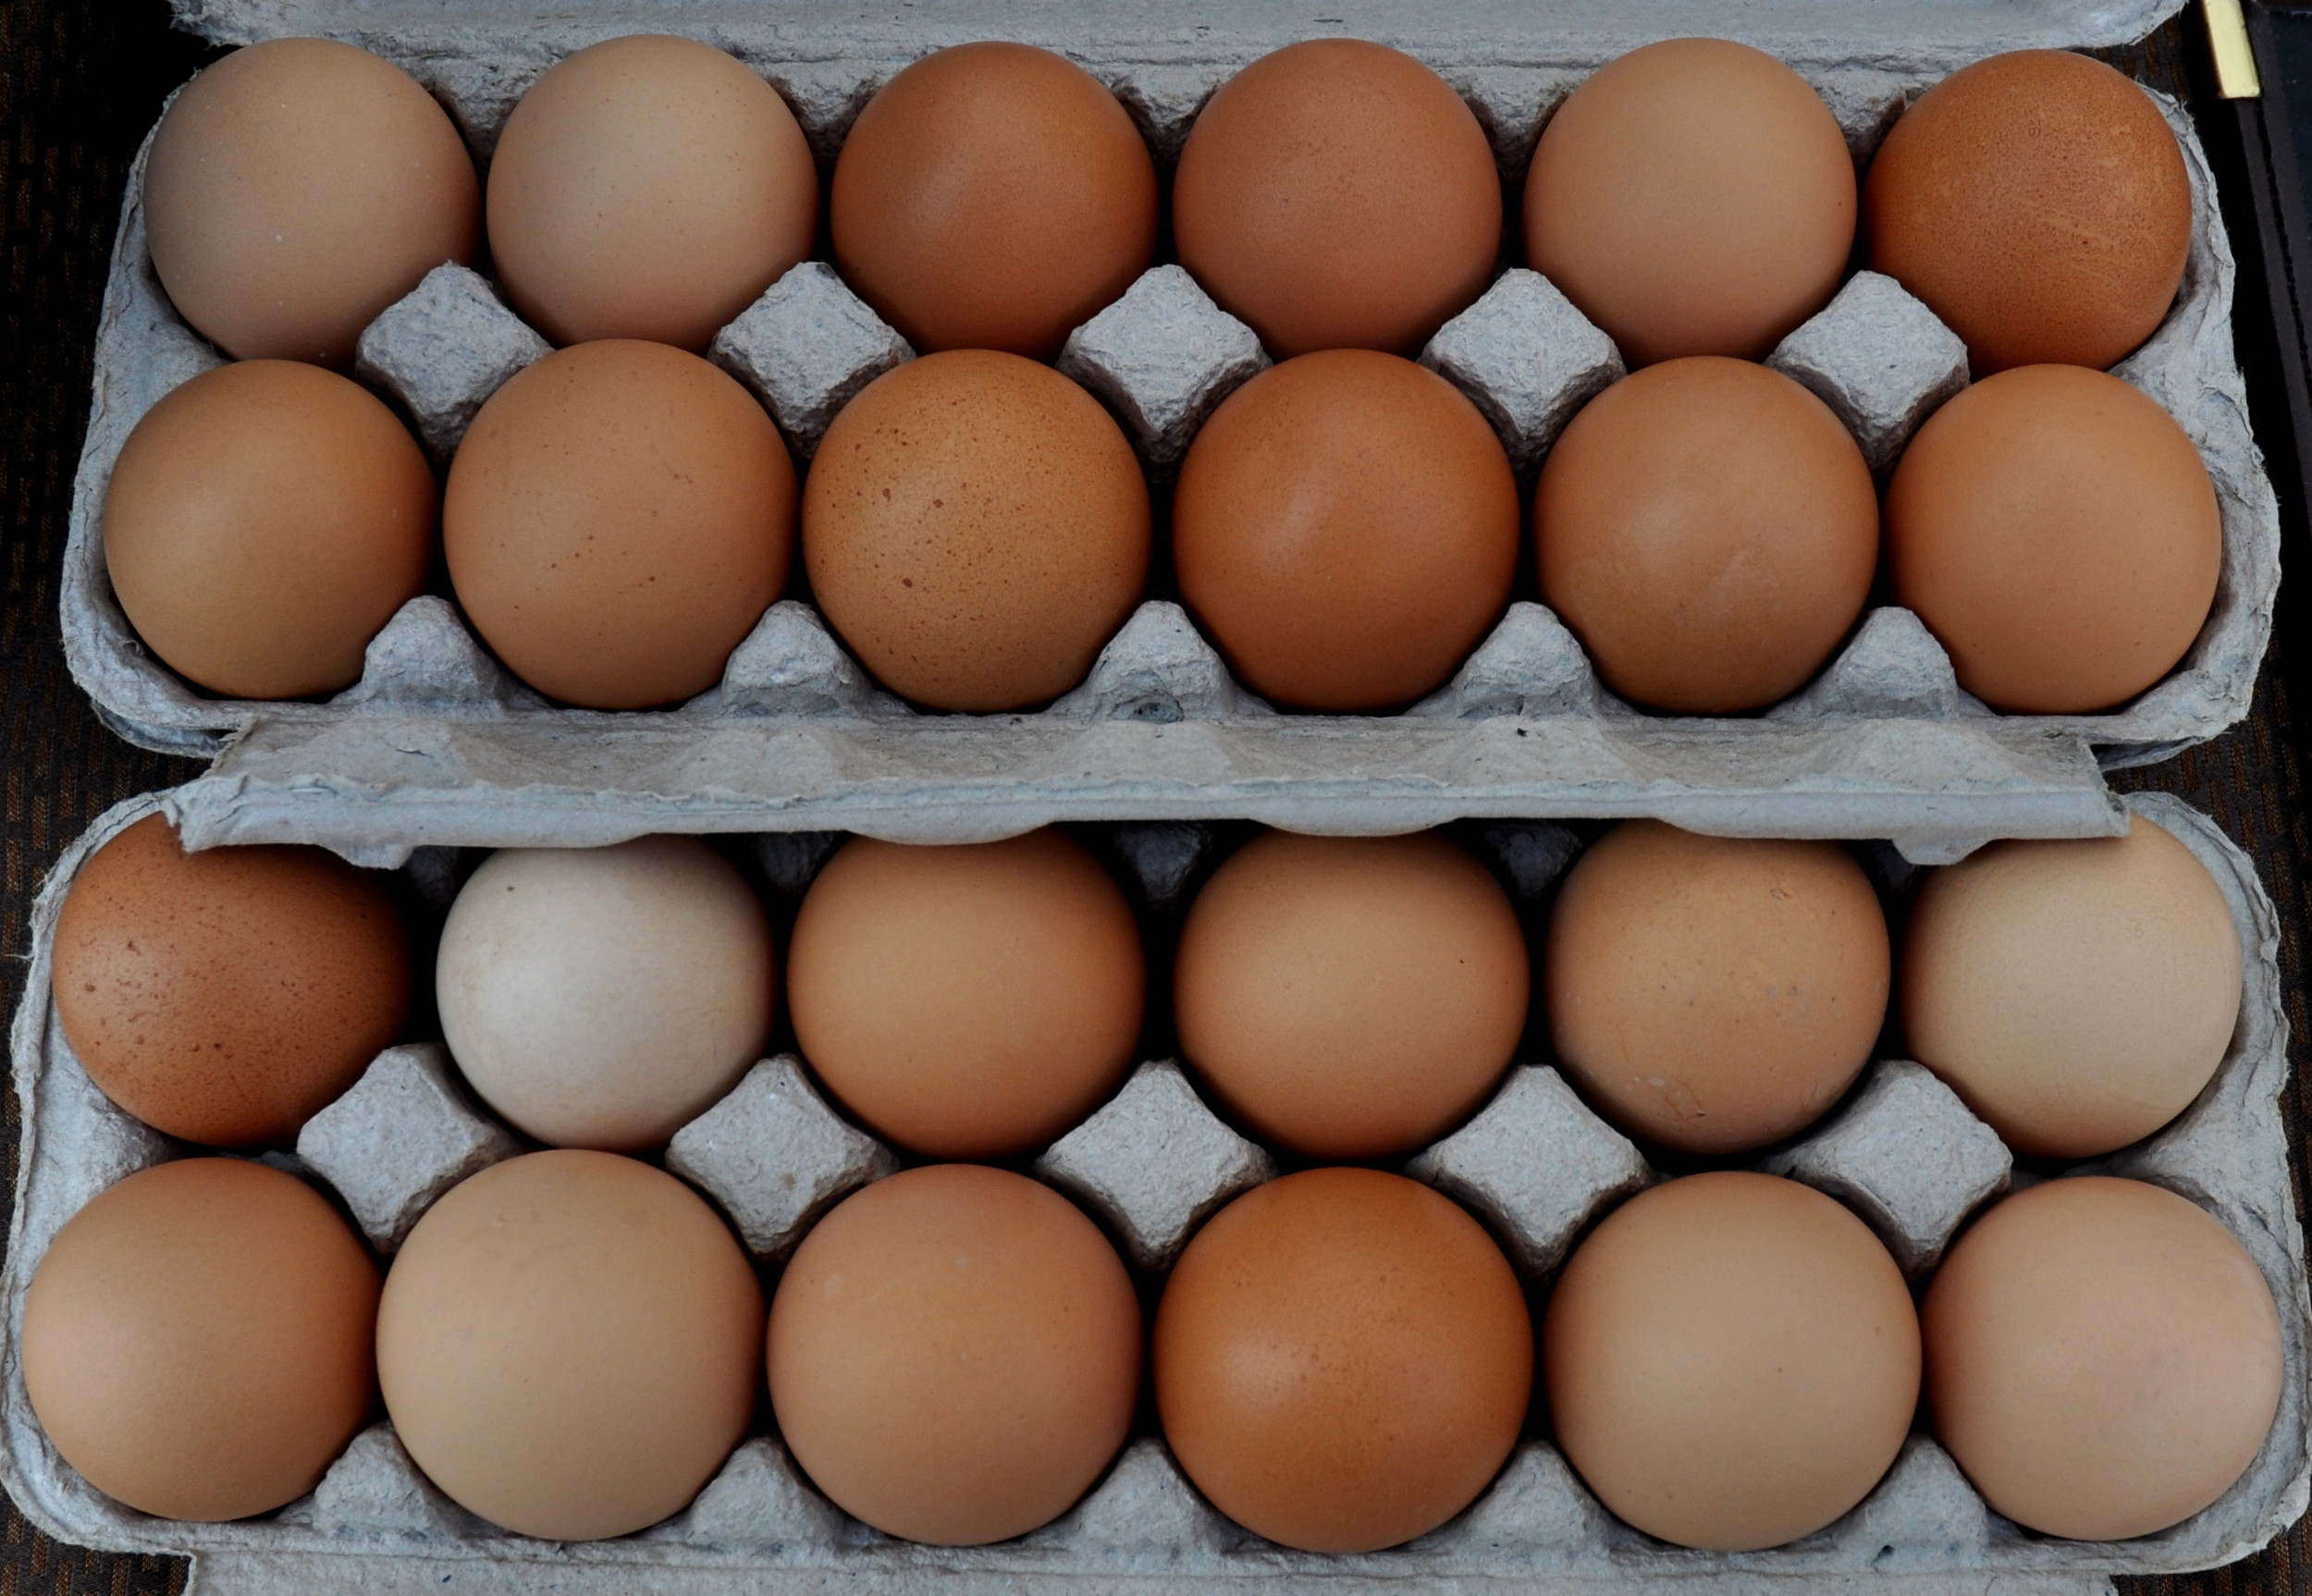 Eggs from Stokesberry Sustainable Farm. Photo copyright 2011 by Zachary D. Lyons.